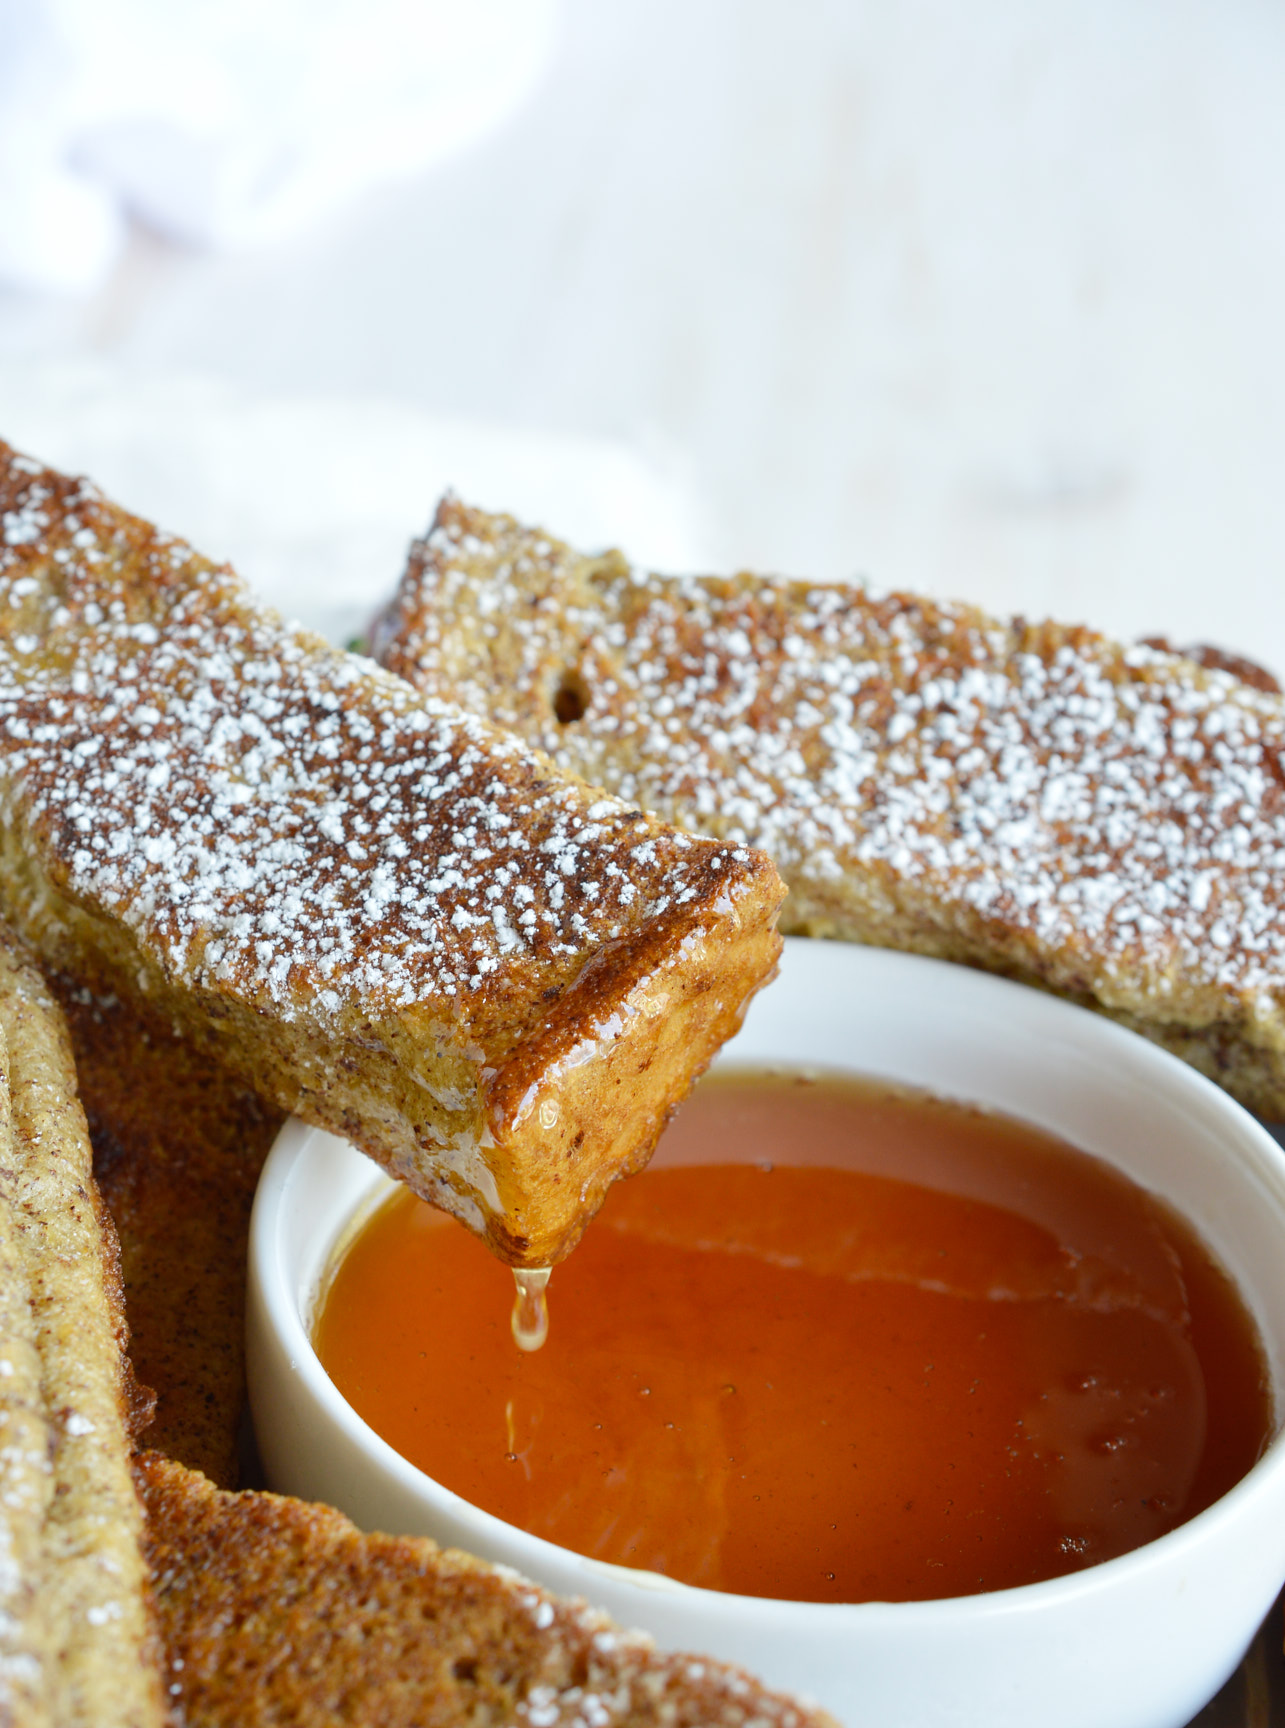 Breakfast and brunch just got a little easier with these Baked French Toast Sticks! This simple recipe is great for feeding a hungry morning crowd! Don't forget the maple syrup and coffee!